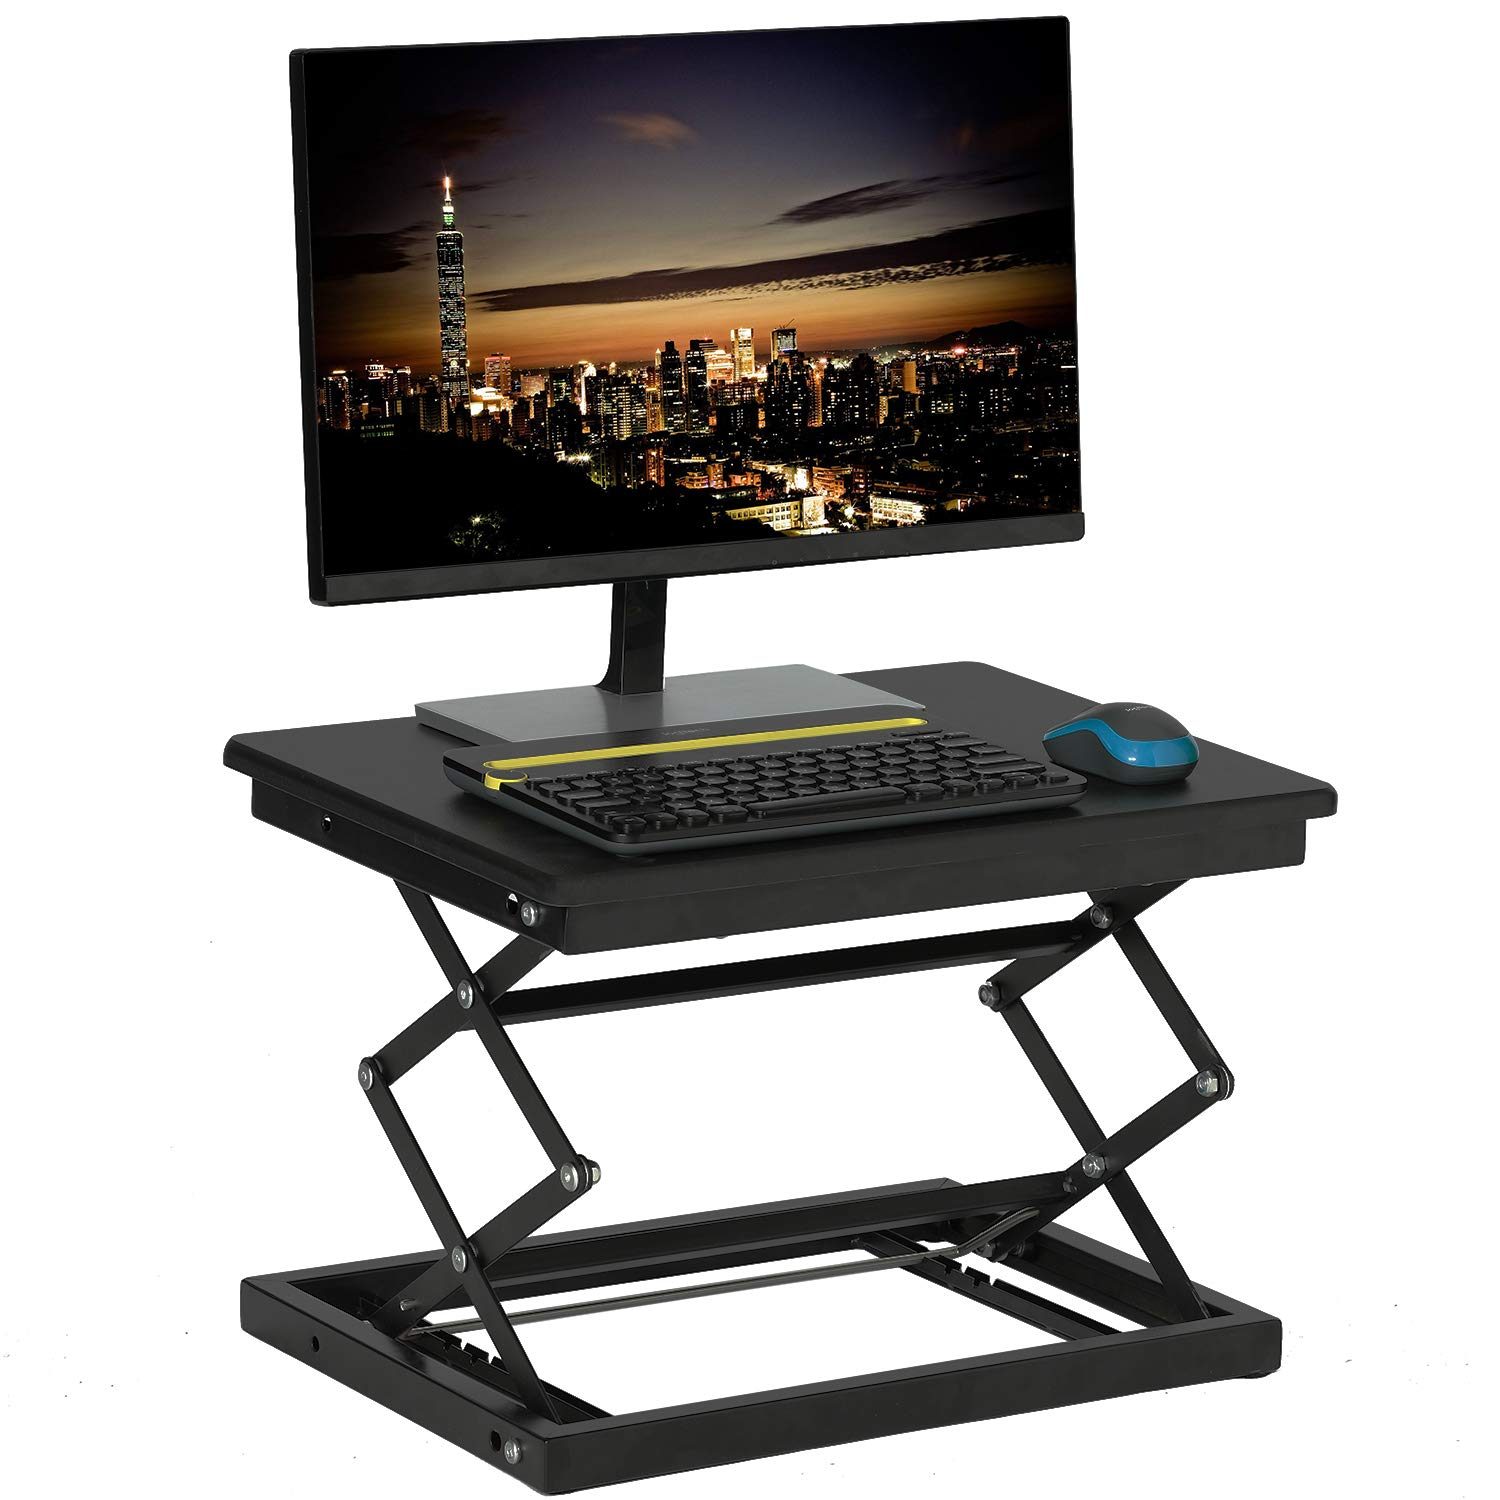 KICODE Laptop Standing Desk, Standing Office Table, Stand up Laptop Stand, Sit to Stand Desk Riser by Kicode